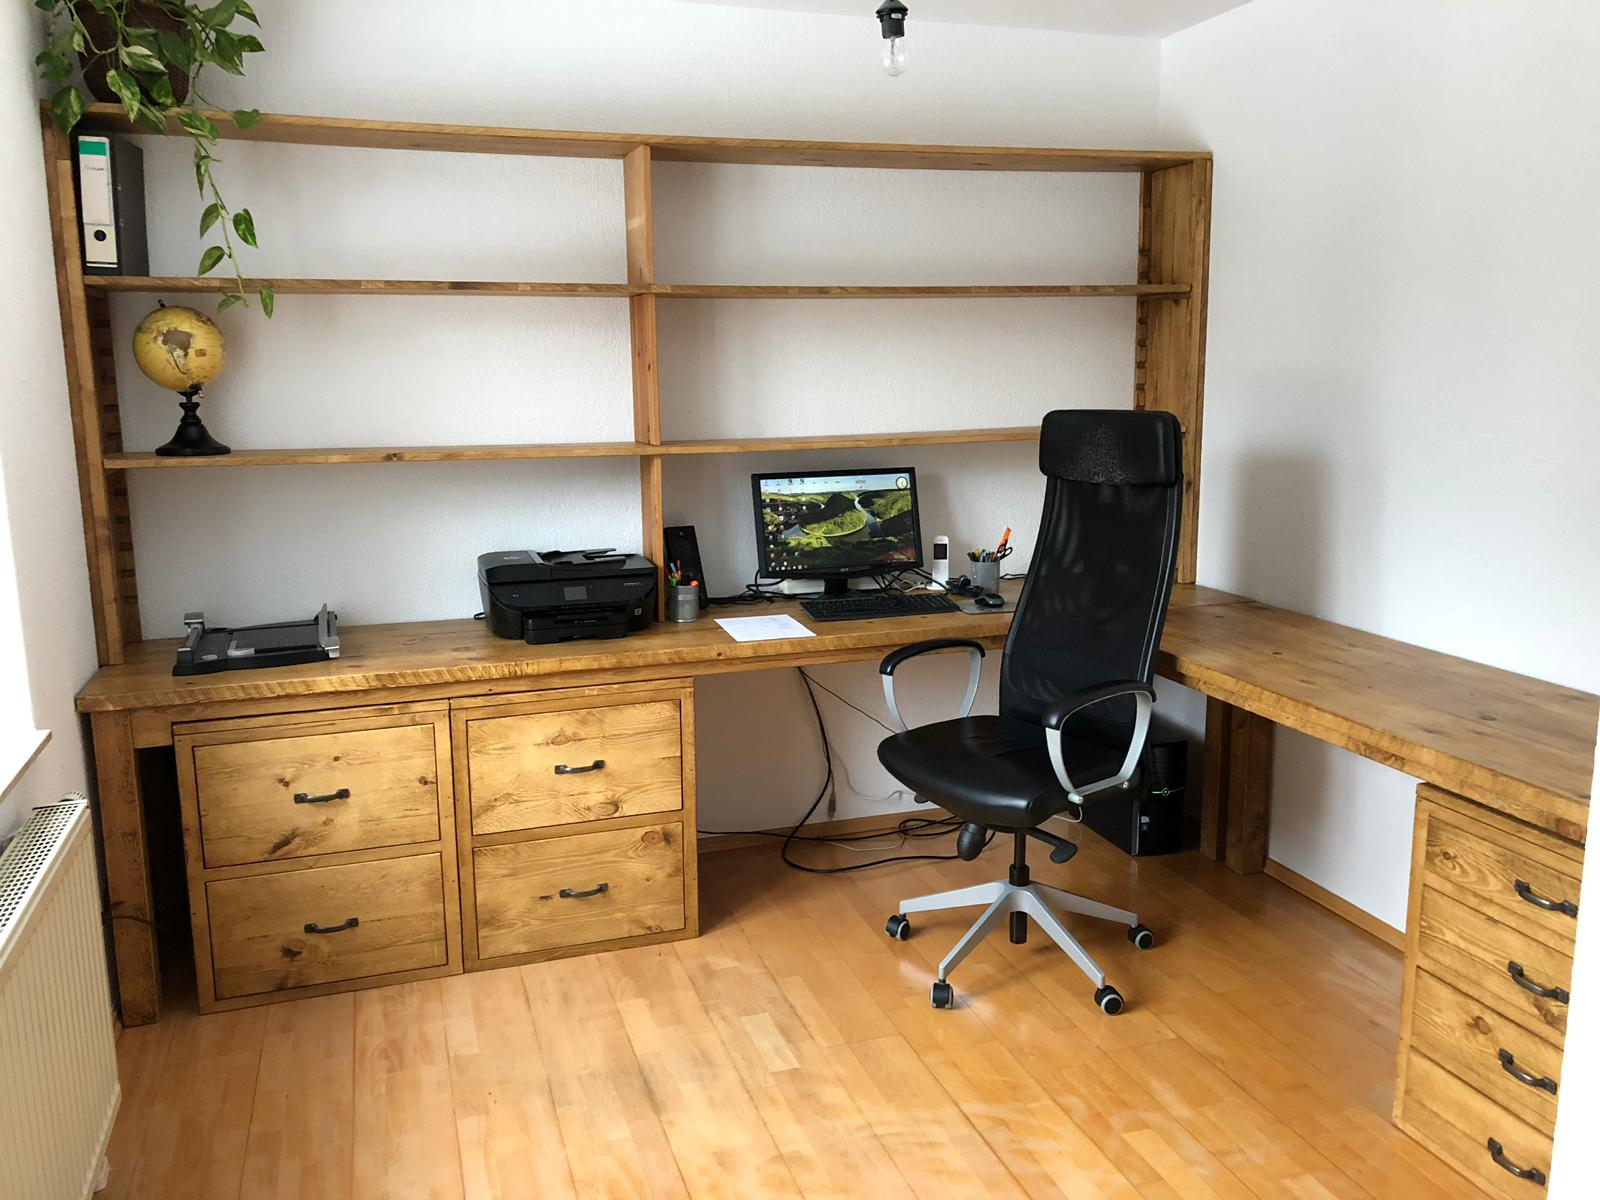 Office Desk with Shelves.JPG